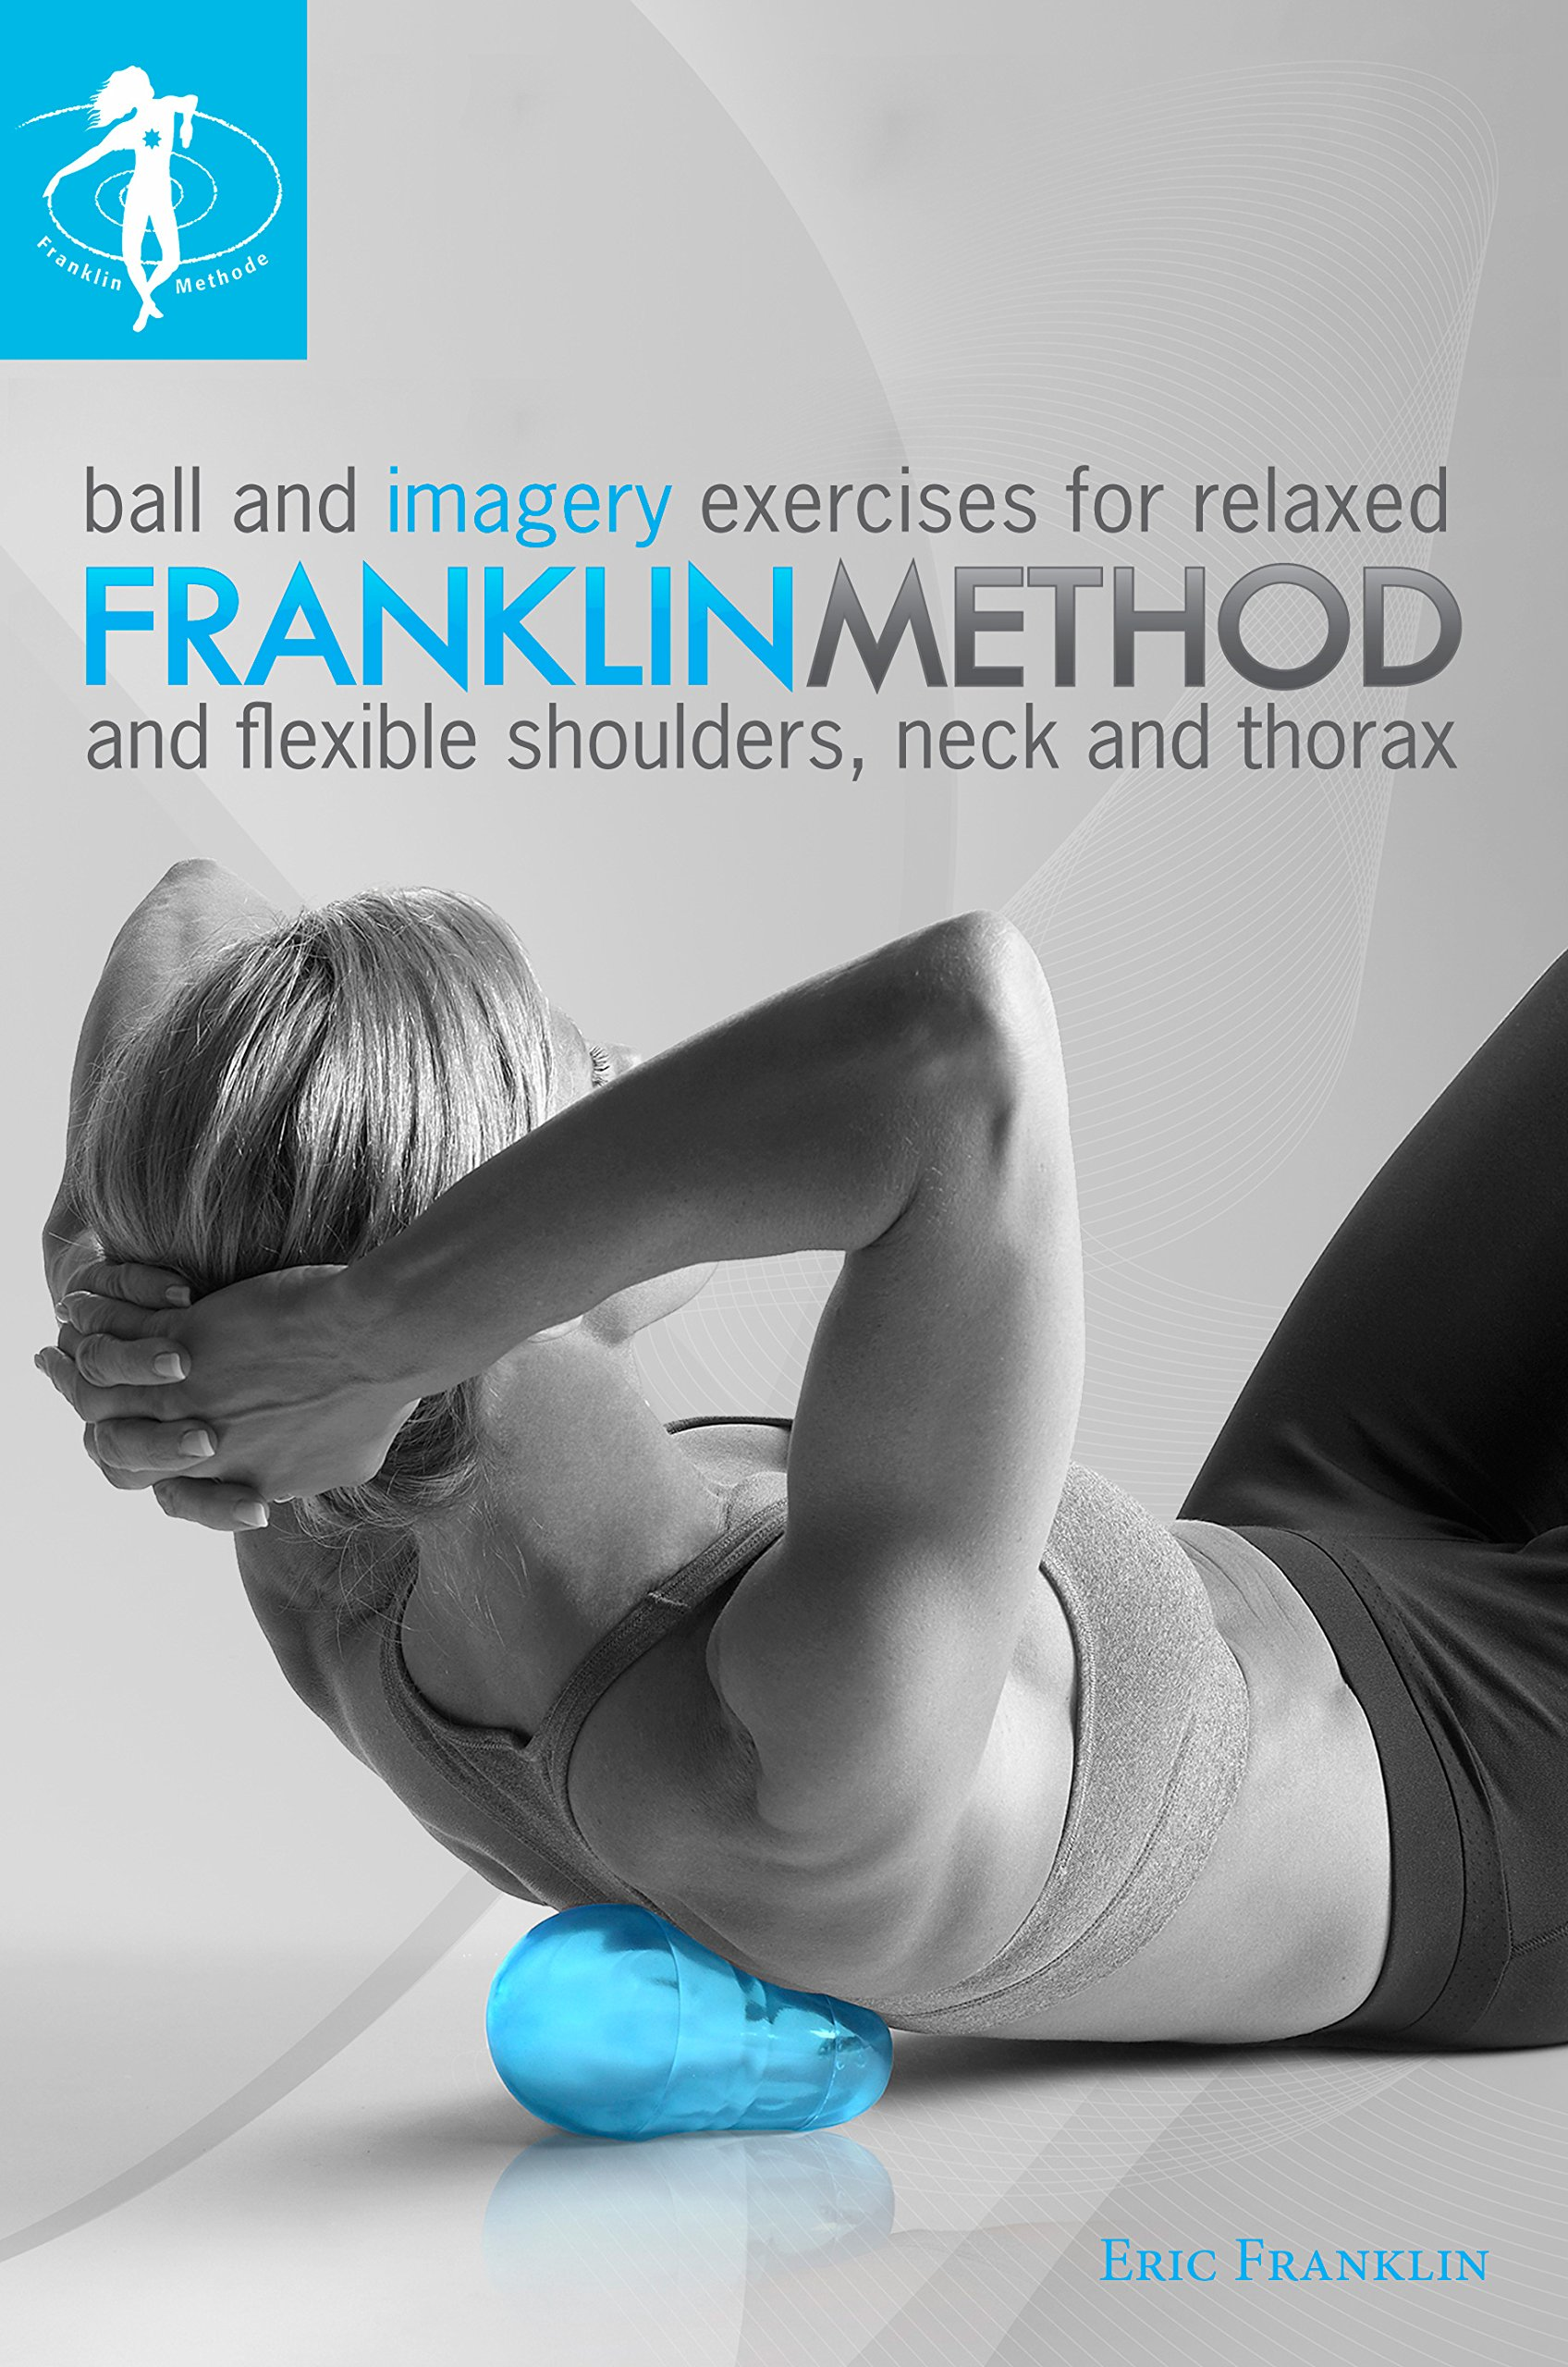 Franklin method ball and imagery exercises for relaxed and flexible franklin method ball and imagery exercises for relaxed and flexible shoulders neck and thorax 8491 eric franklin 9780979988042 amazon books fandeluxe Images